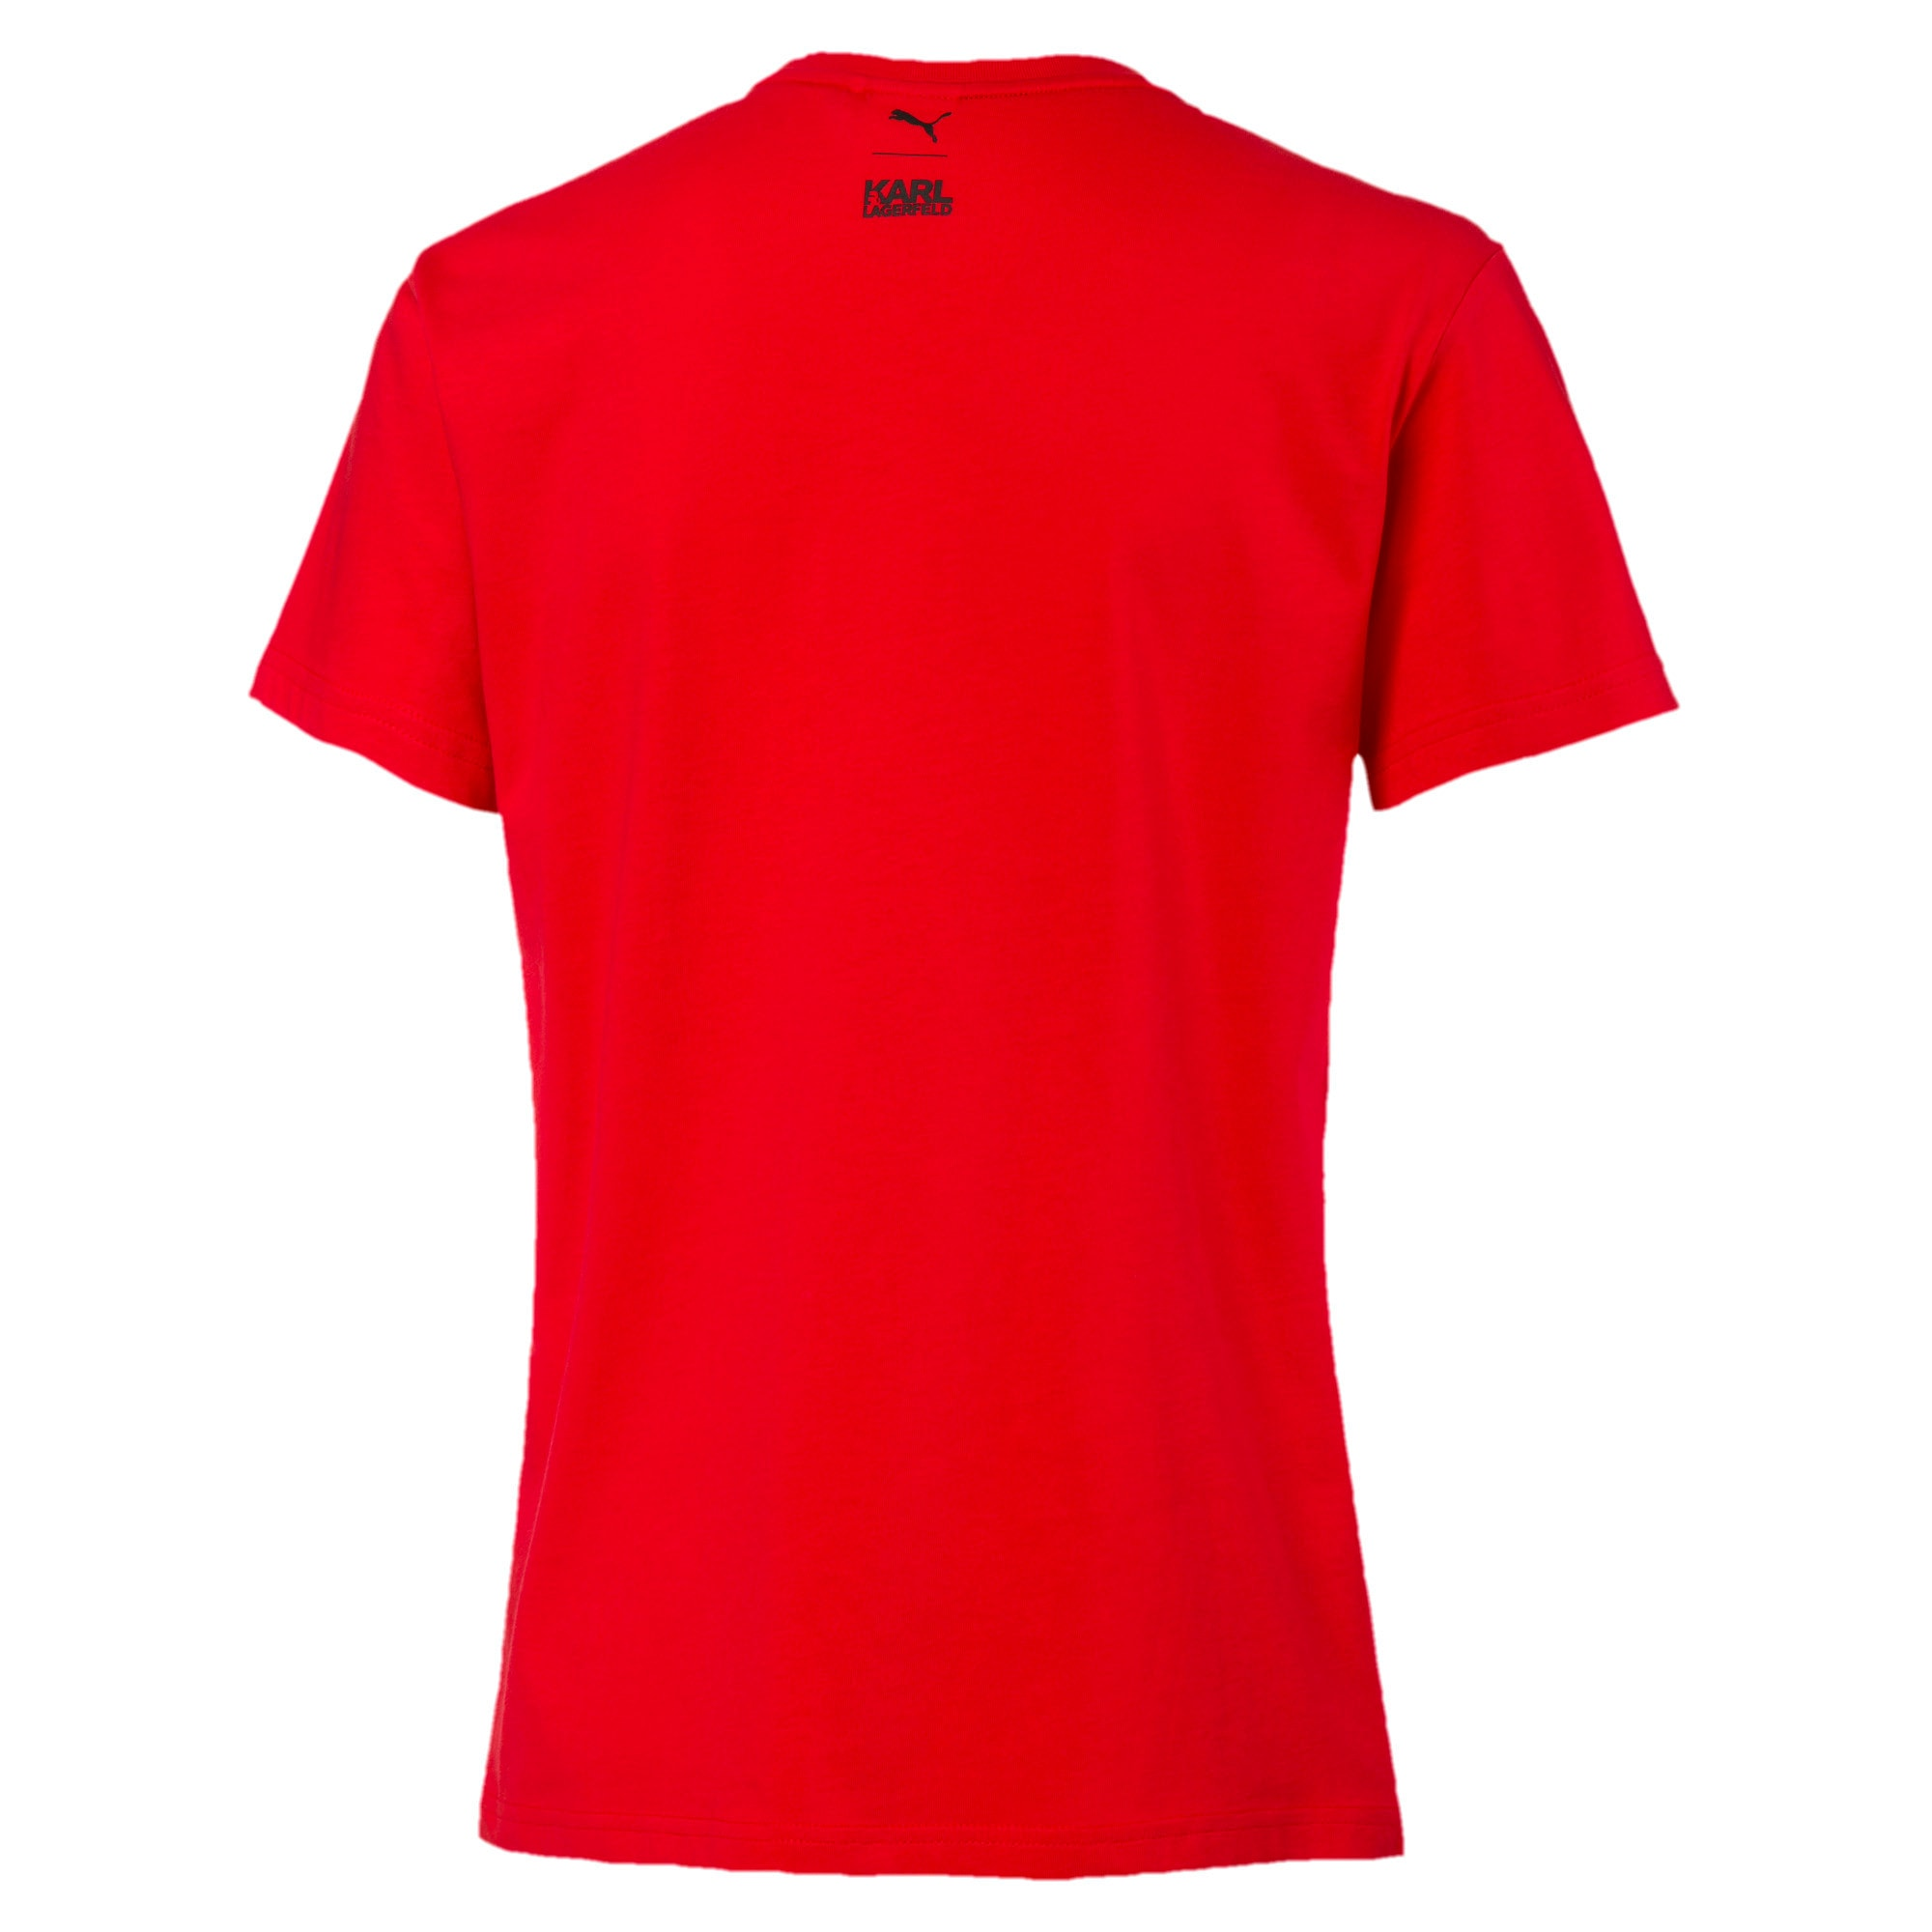 Thumbnail 2 of PUMA x KARL LAGERFELD Women's Tee, High Risk Red, medium